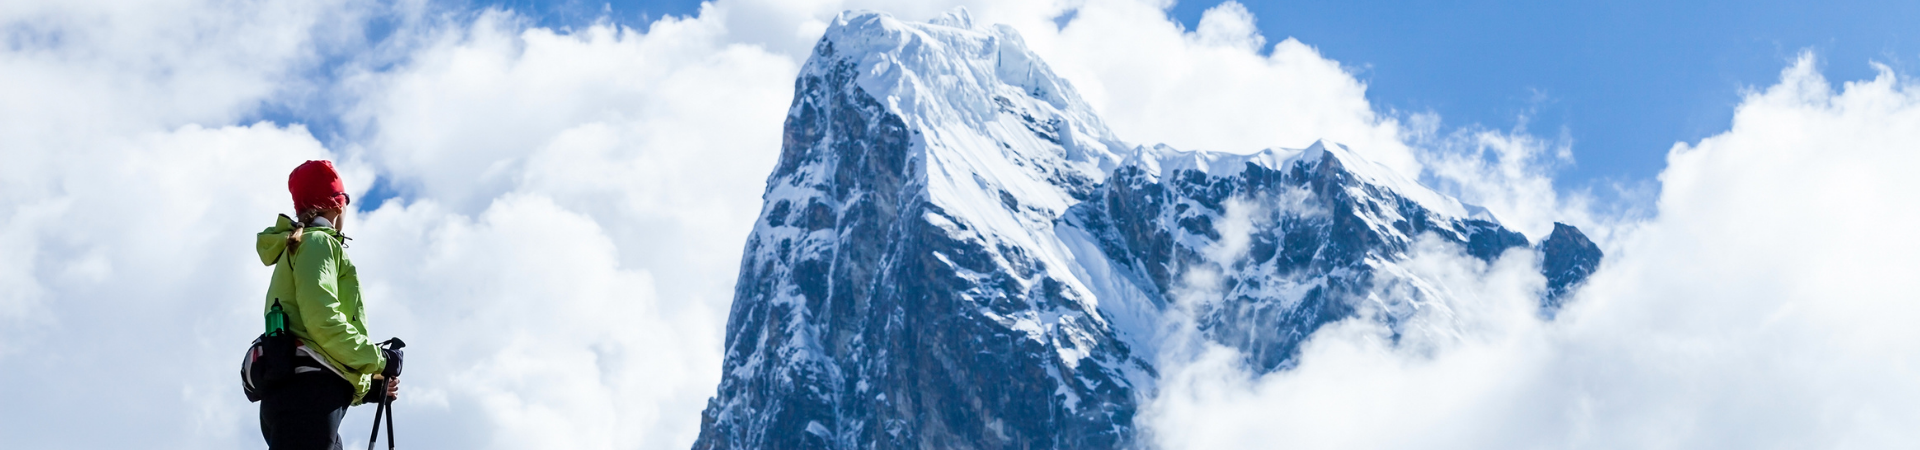 201911366 - Climb your mountain email series